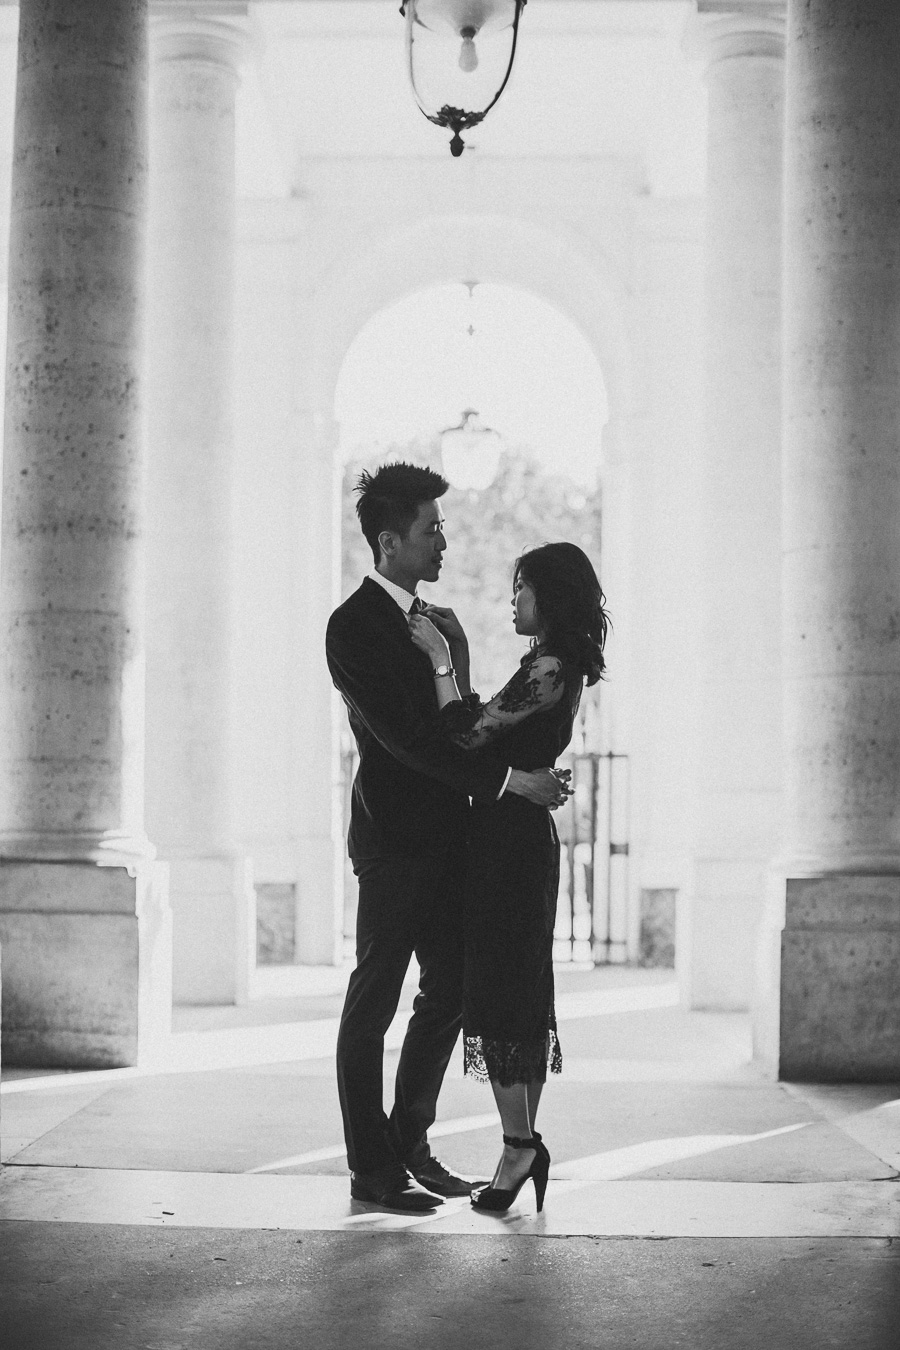 0045_lifestories-Wedding-Photography-Elopement-Paris-Wendy-et-Josh-151003_MK3_2564